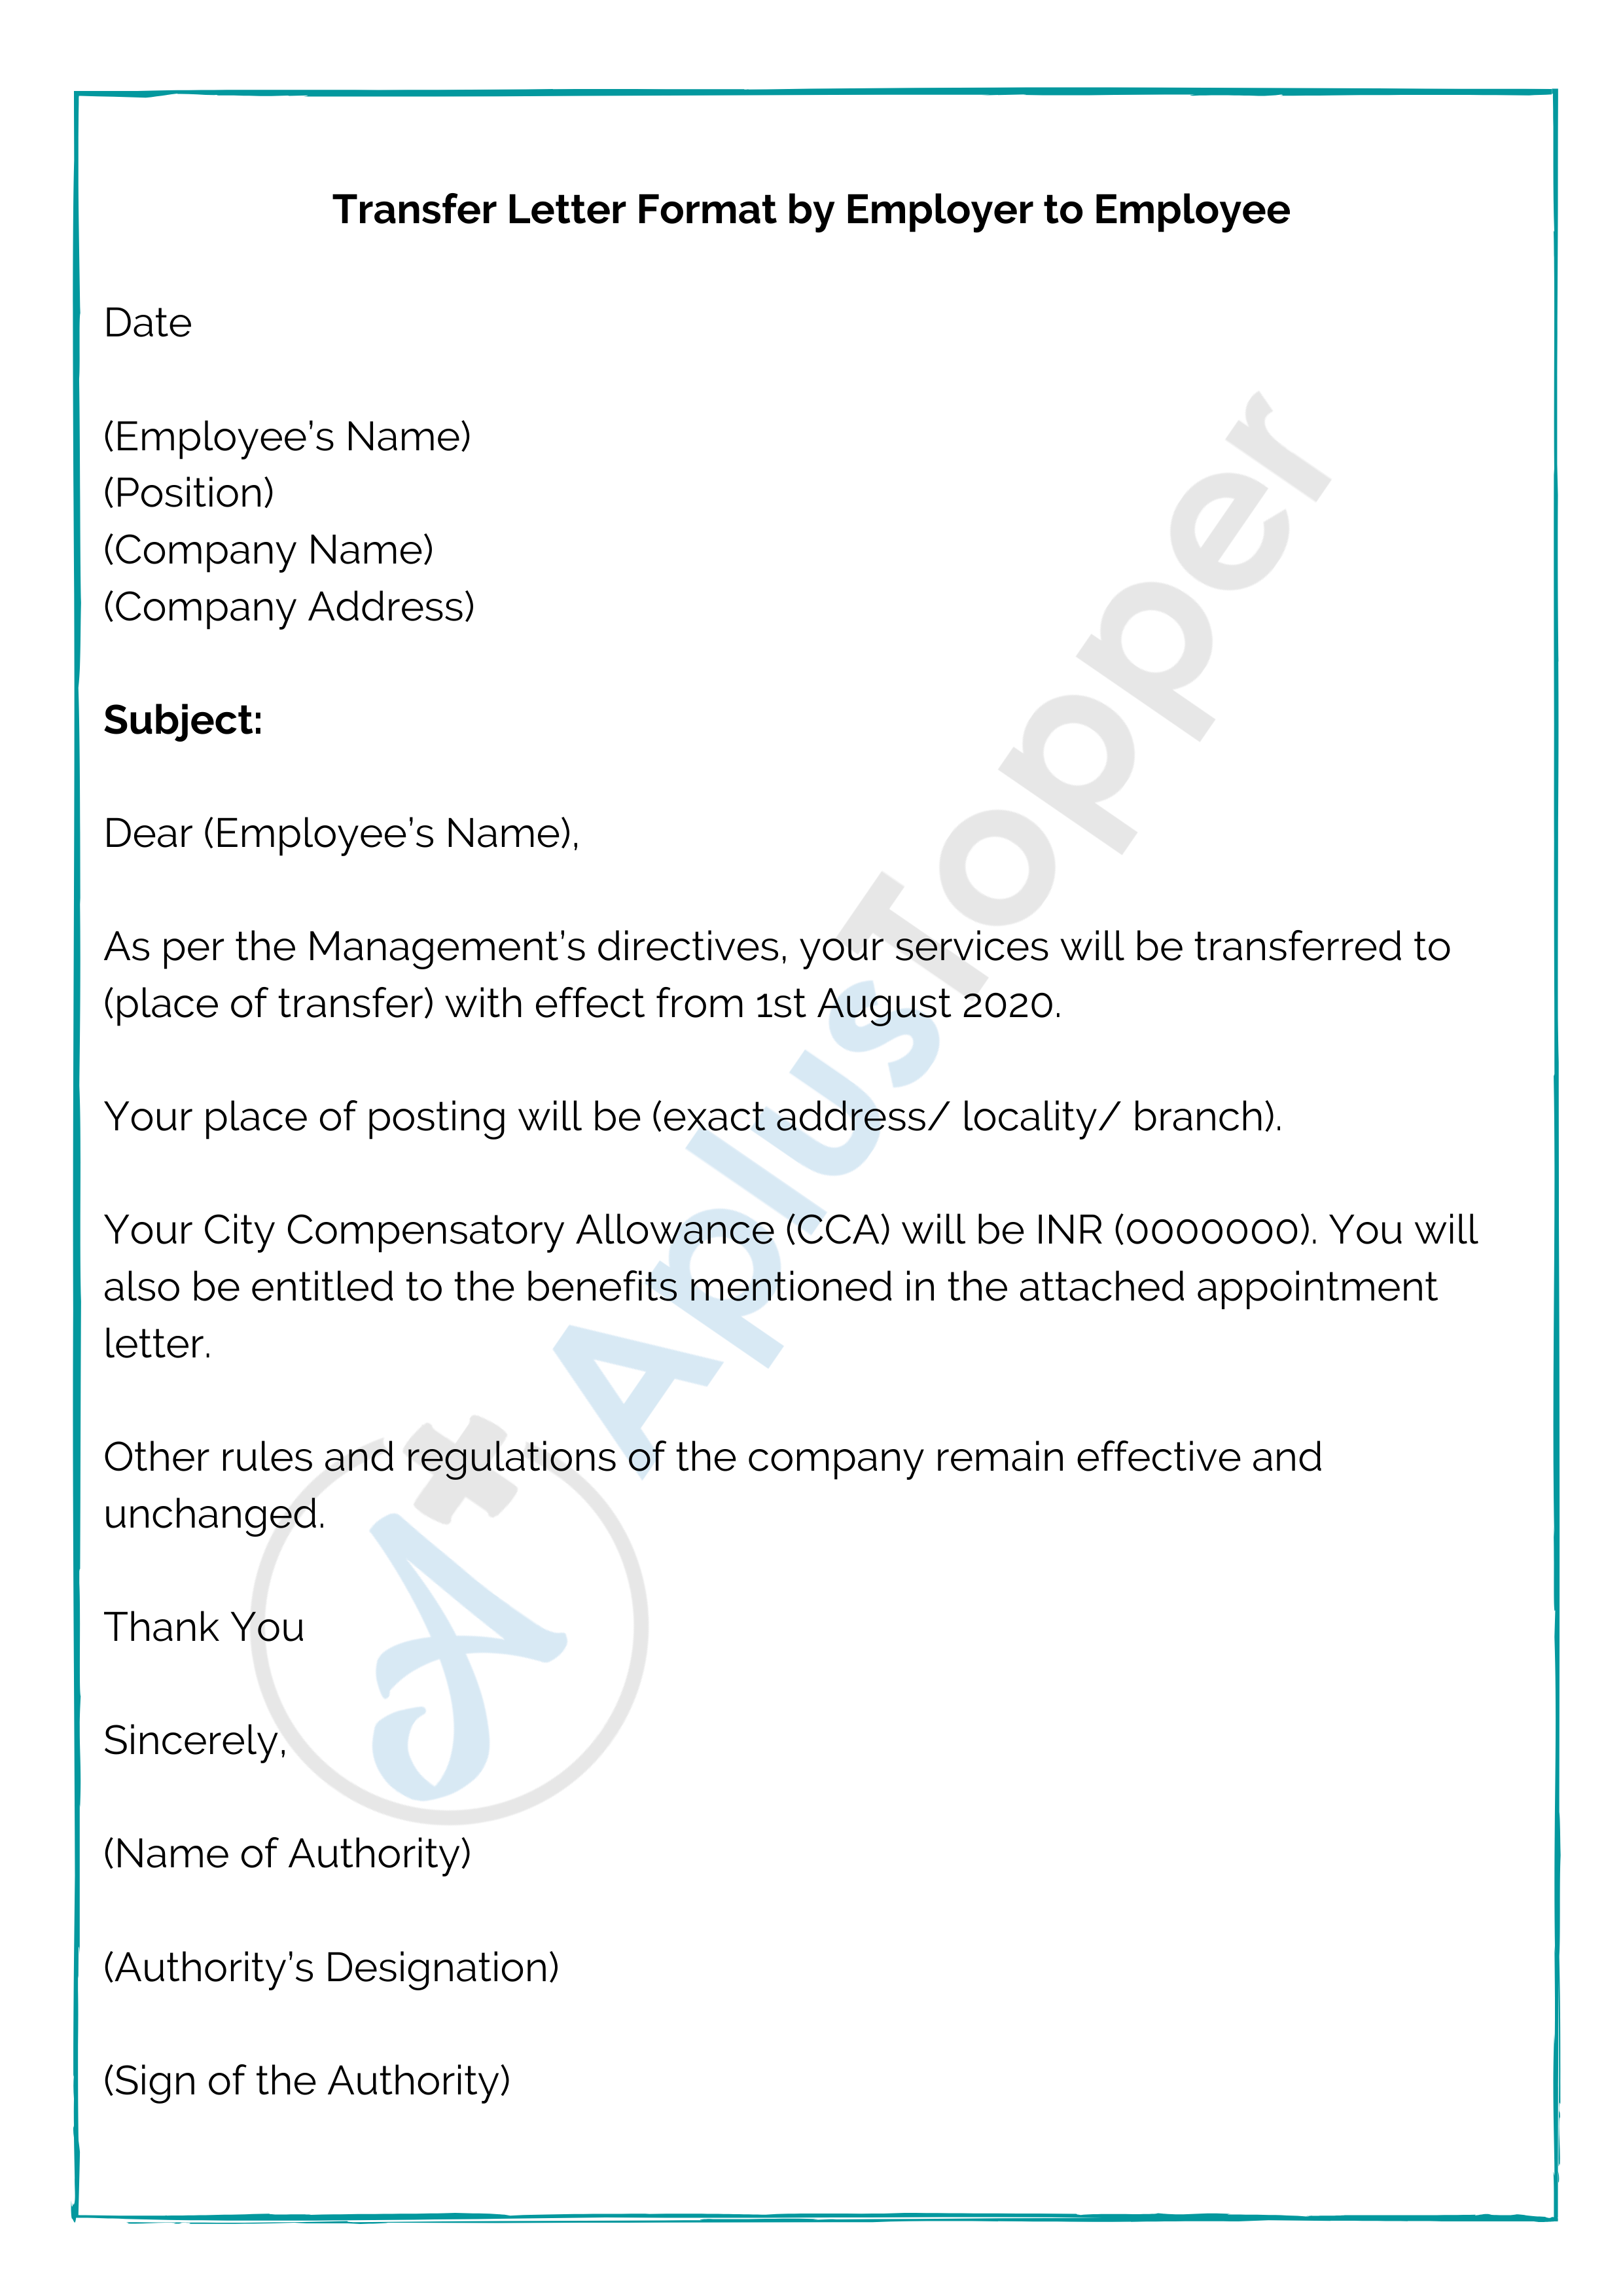 Transfer Letter Format By Employer To Employee